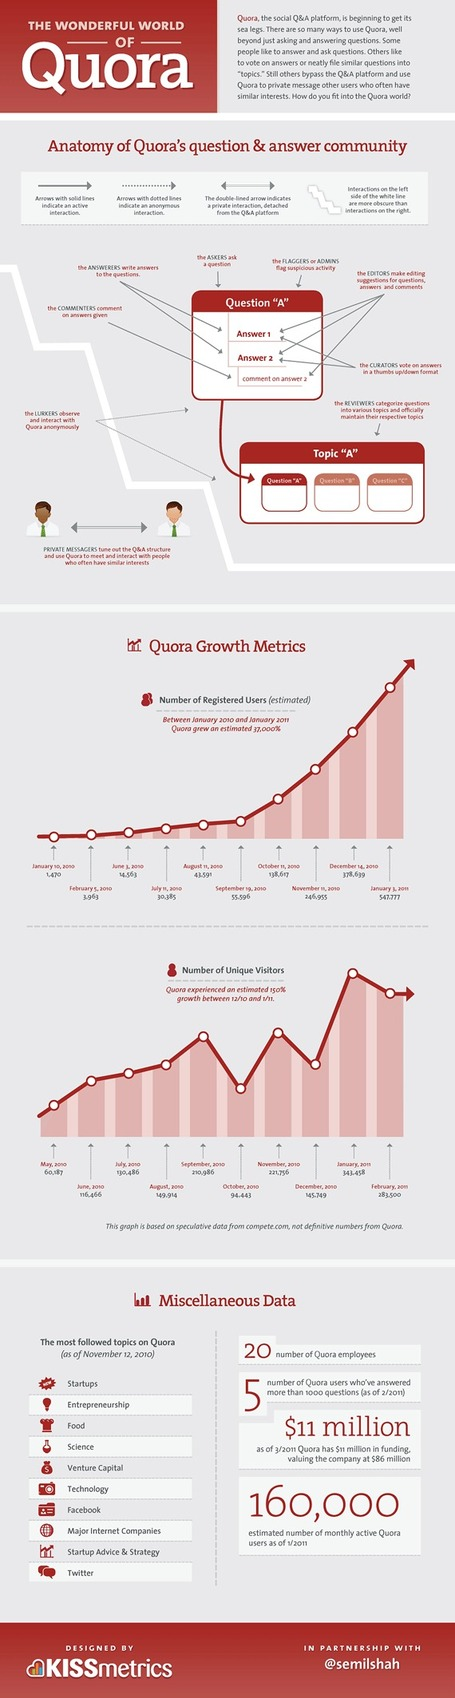 The Wonderful World Of Quora | Marketing in love | Scoop.it